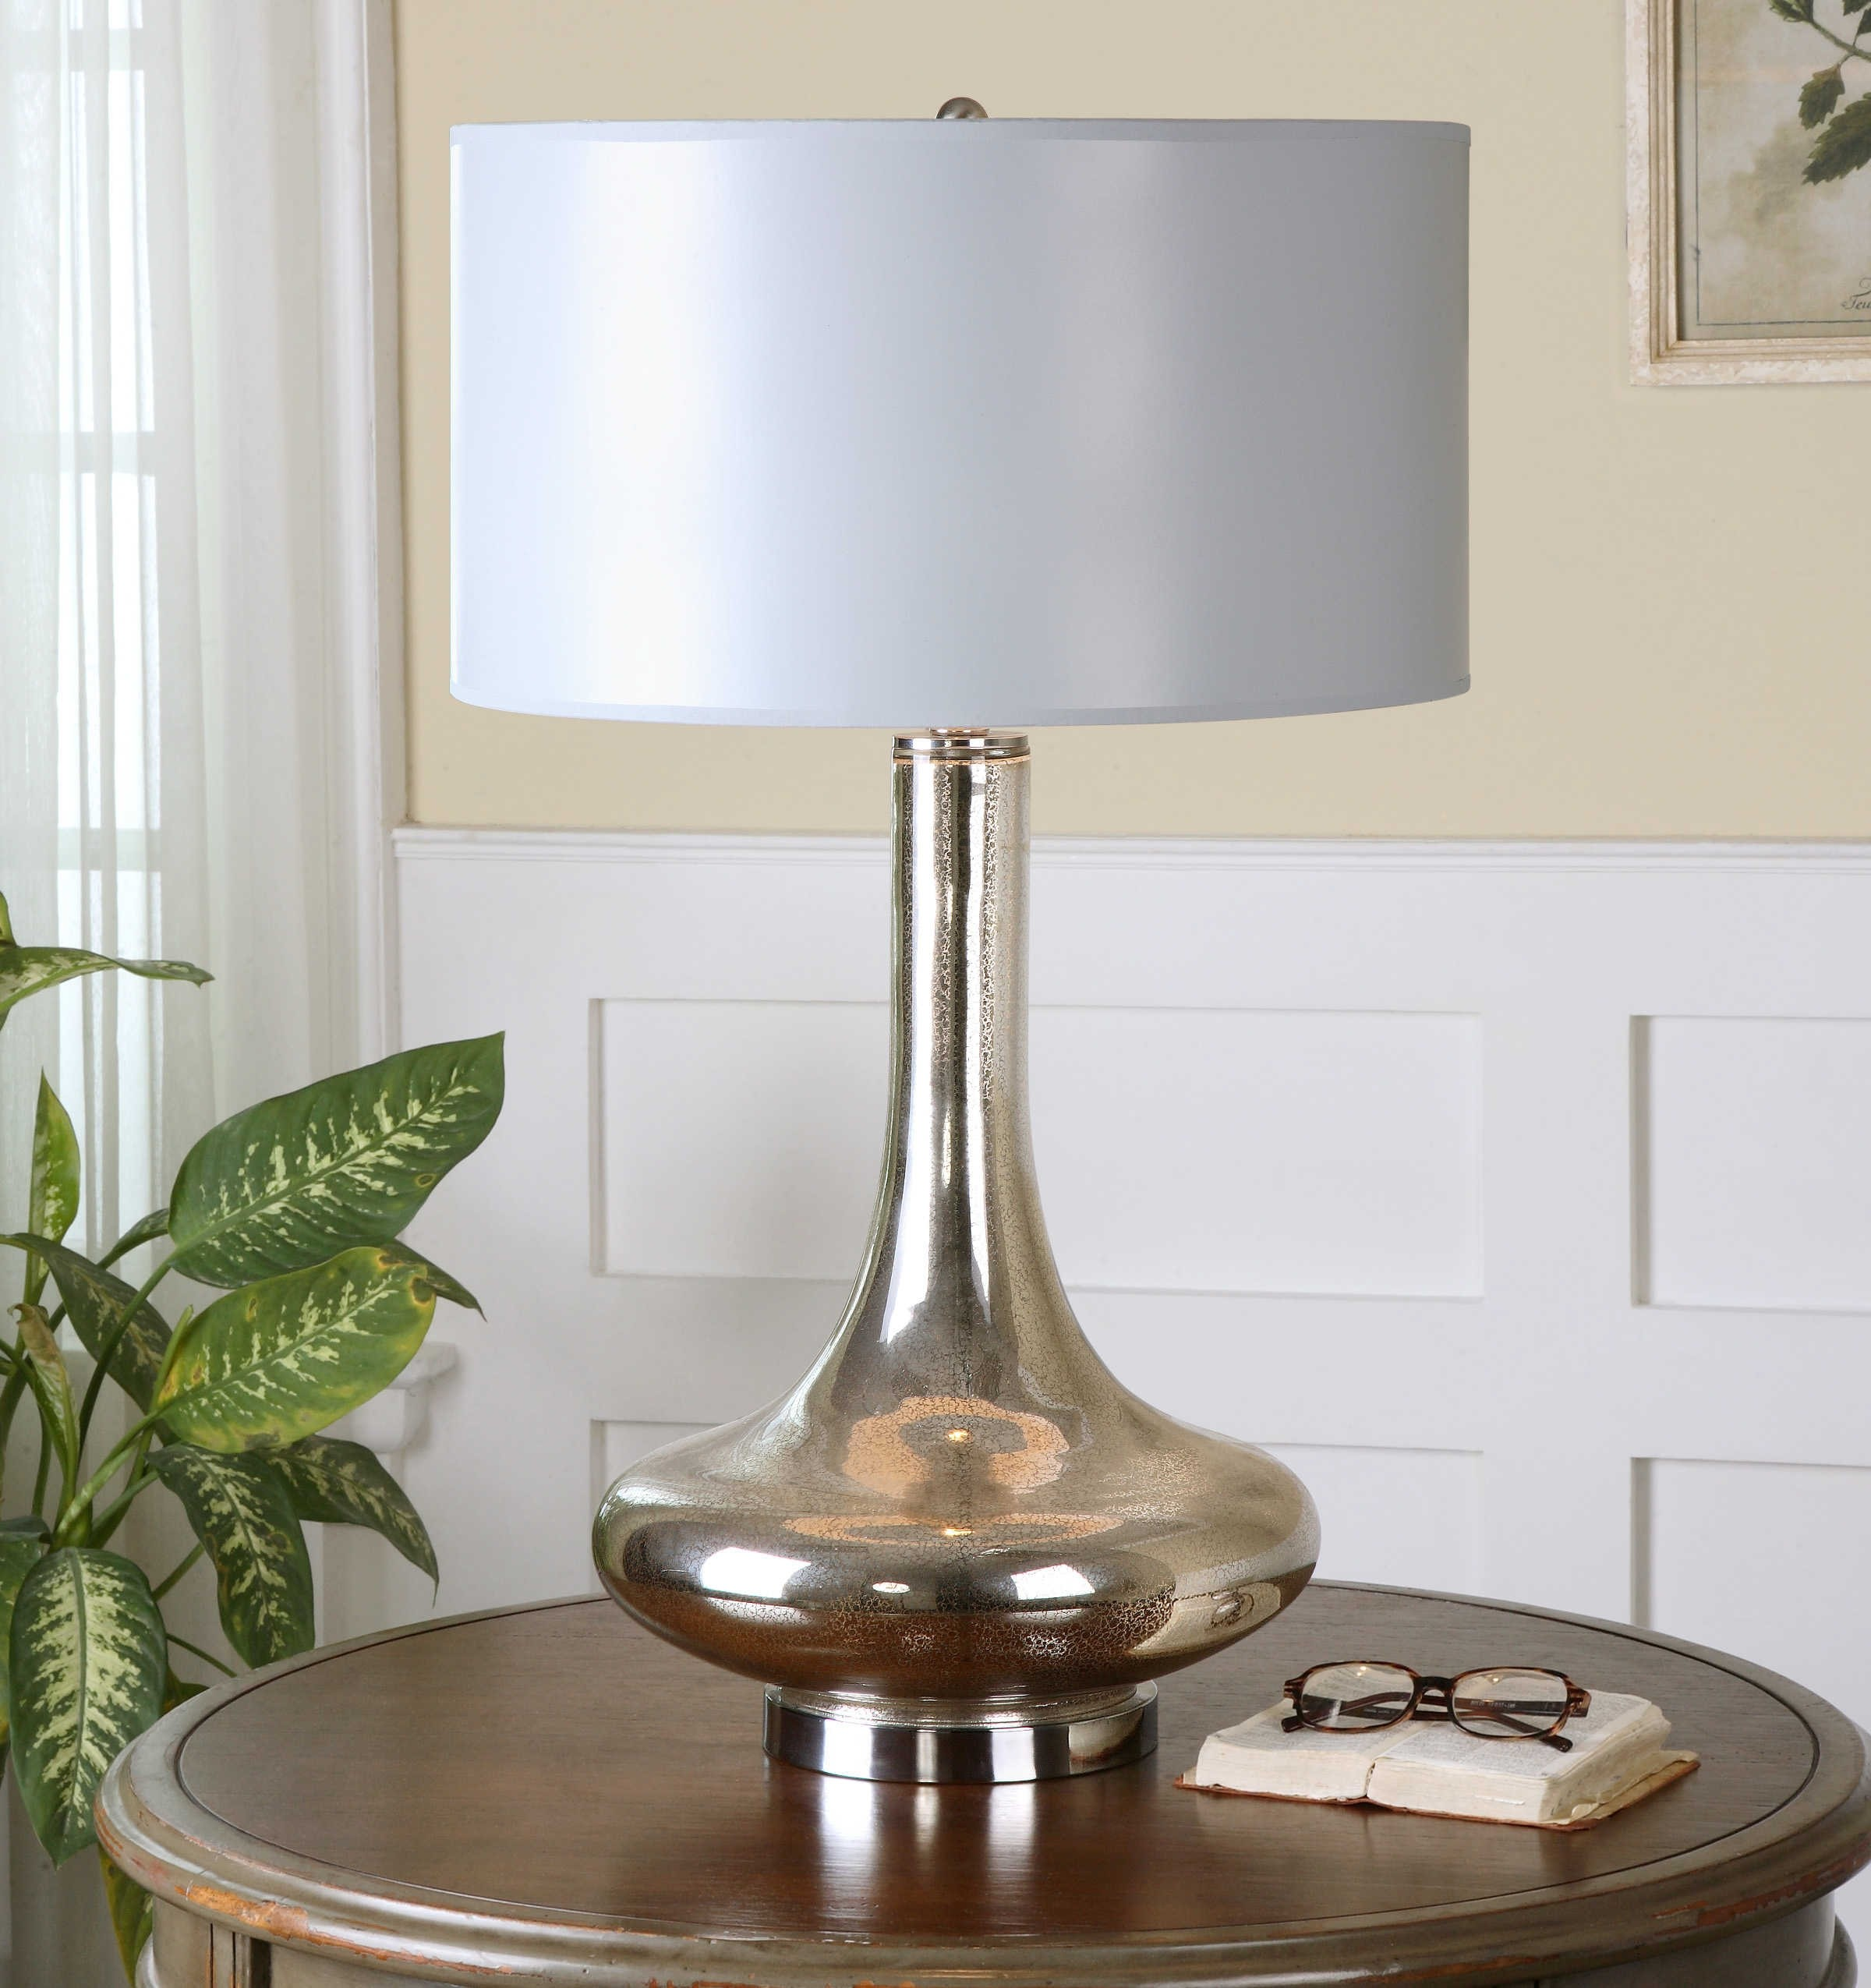 fabricius-table-lamp2